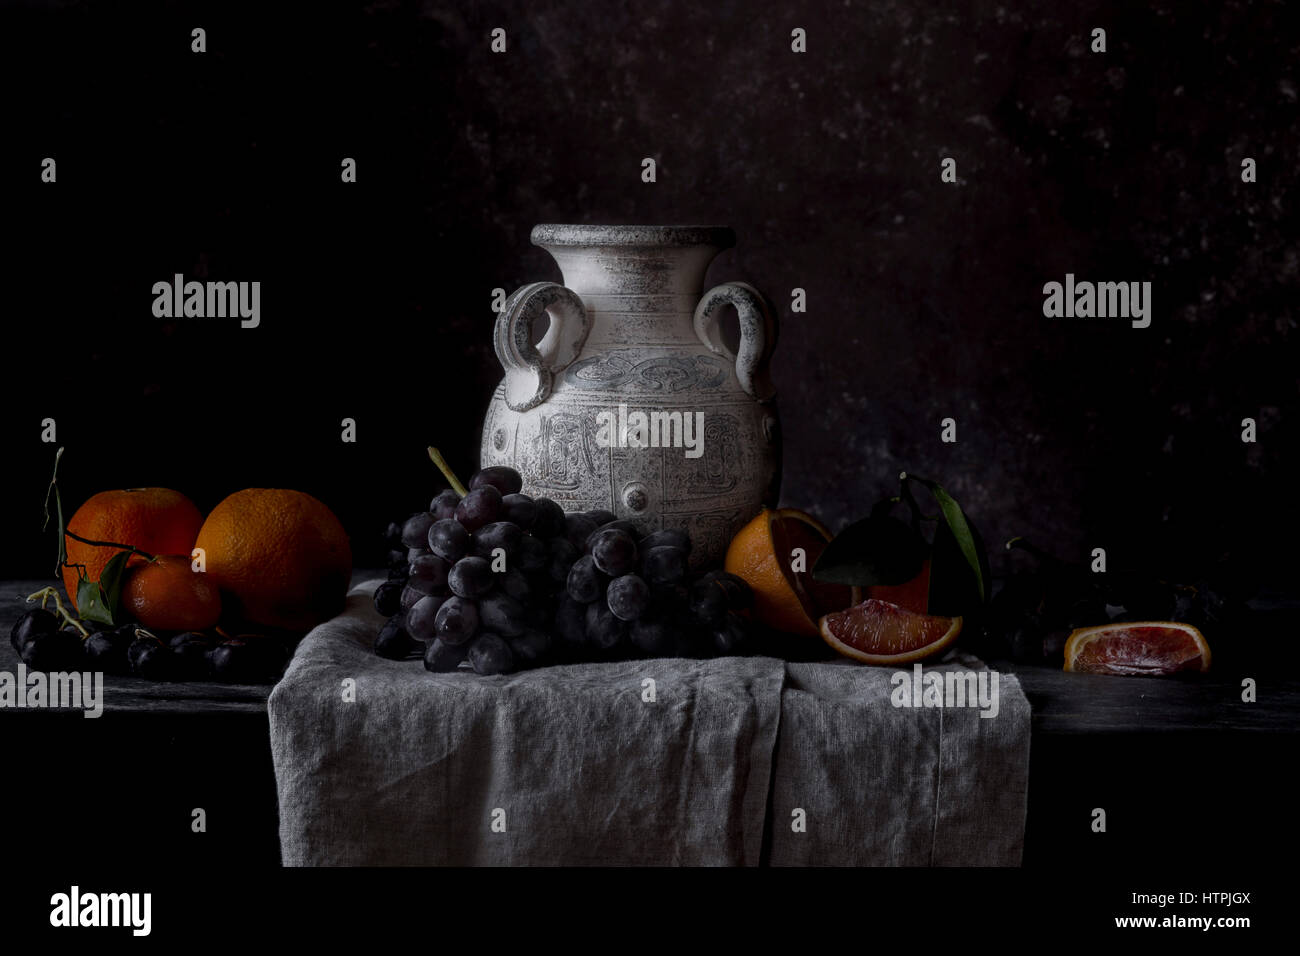 Fruit still life in the style of old masters paintings - Stock Image